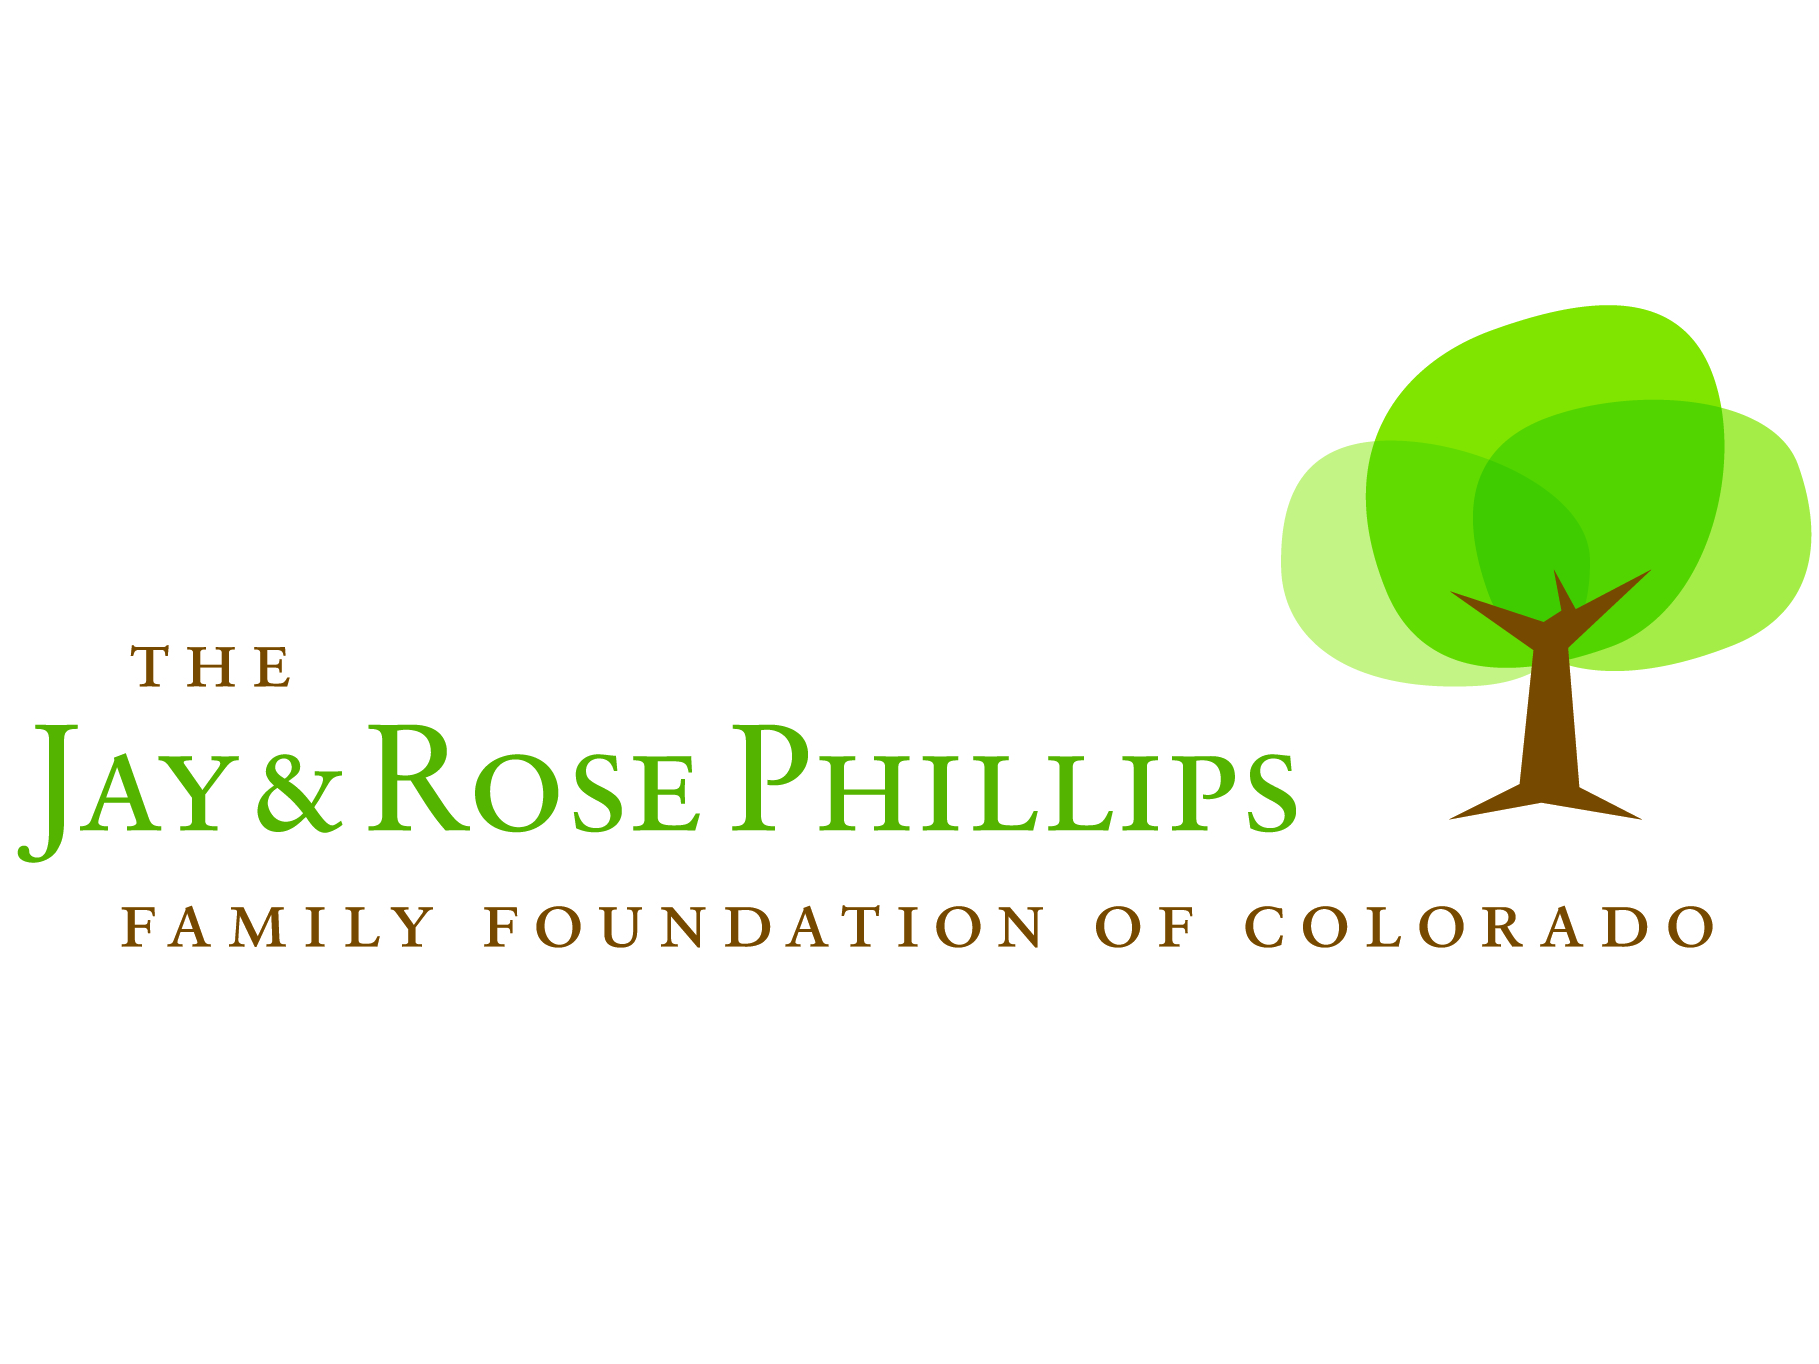 The Jay & Rose Phillips Family Foundation of Colorado